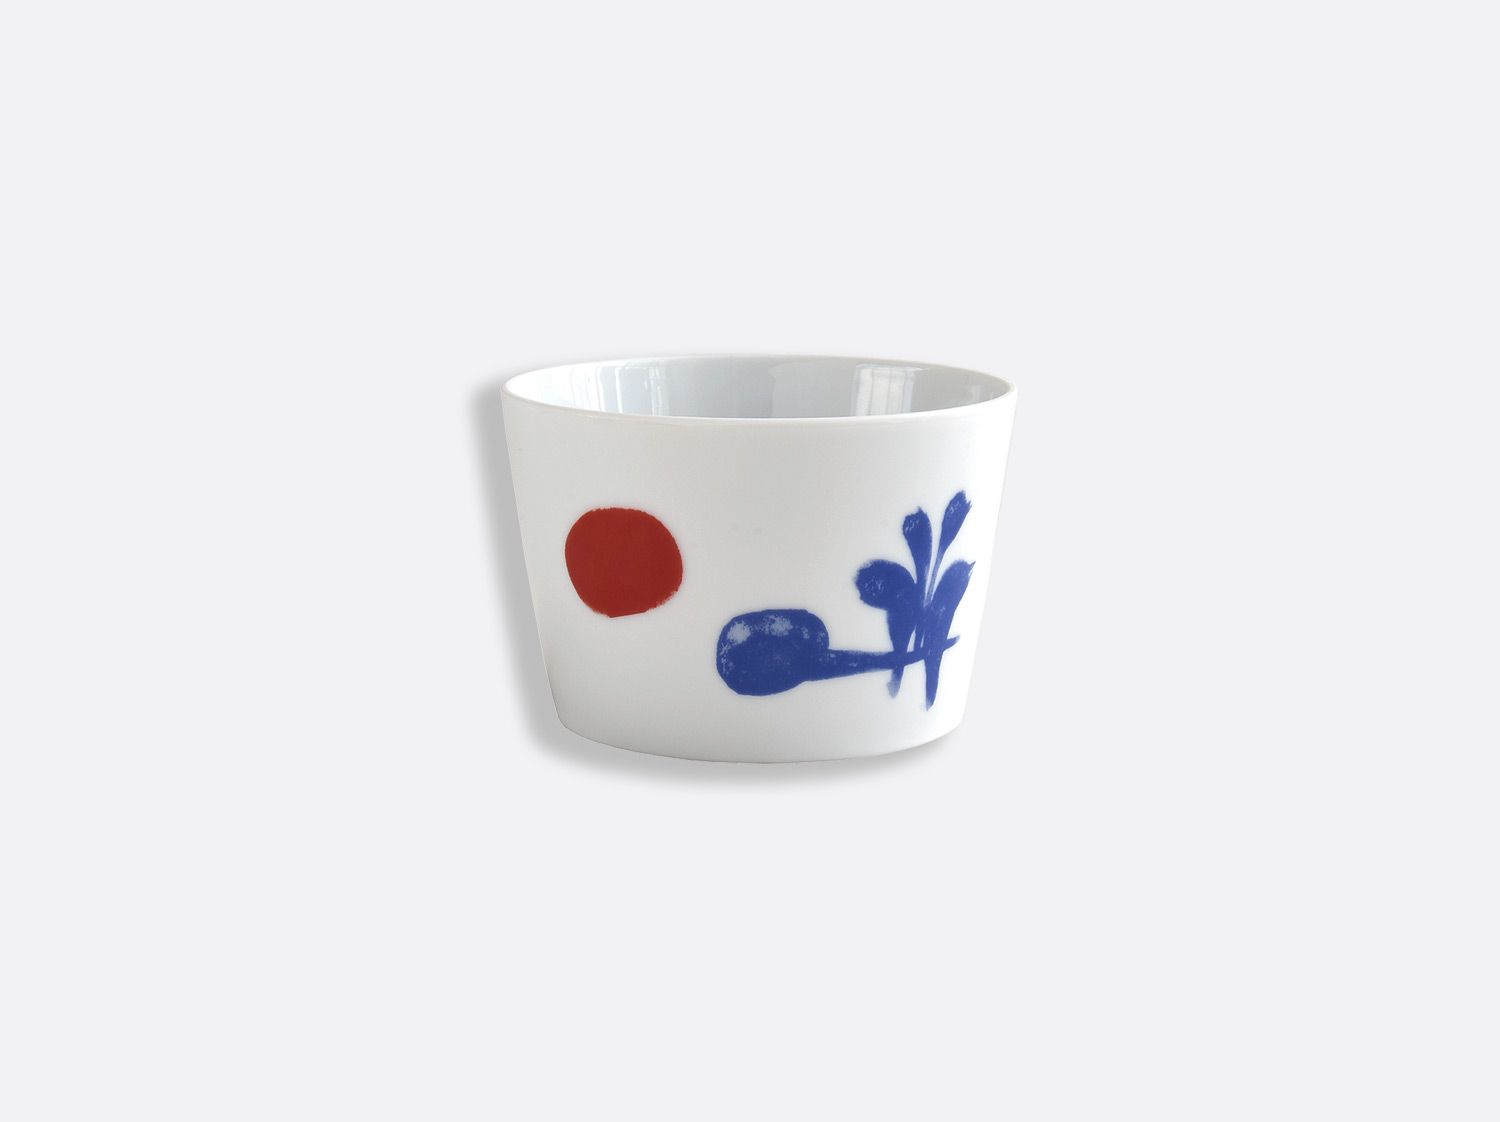 China タンバル(Ⅼ) of the collection PARLER SEUL - Joan Miro | Bernardaud